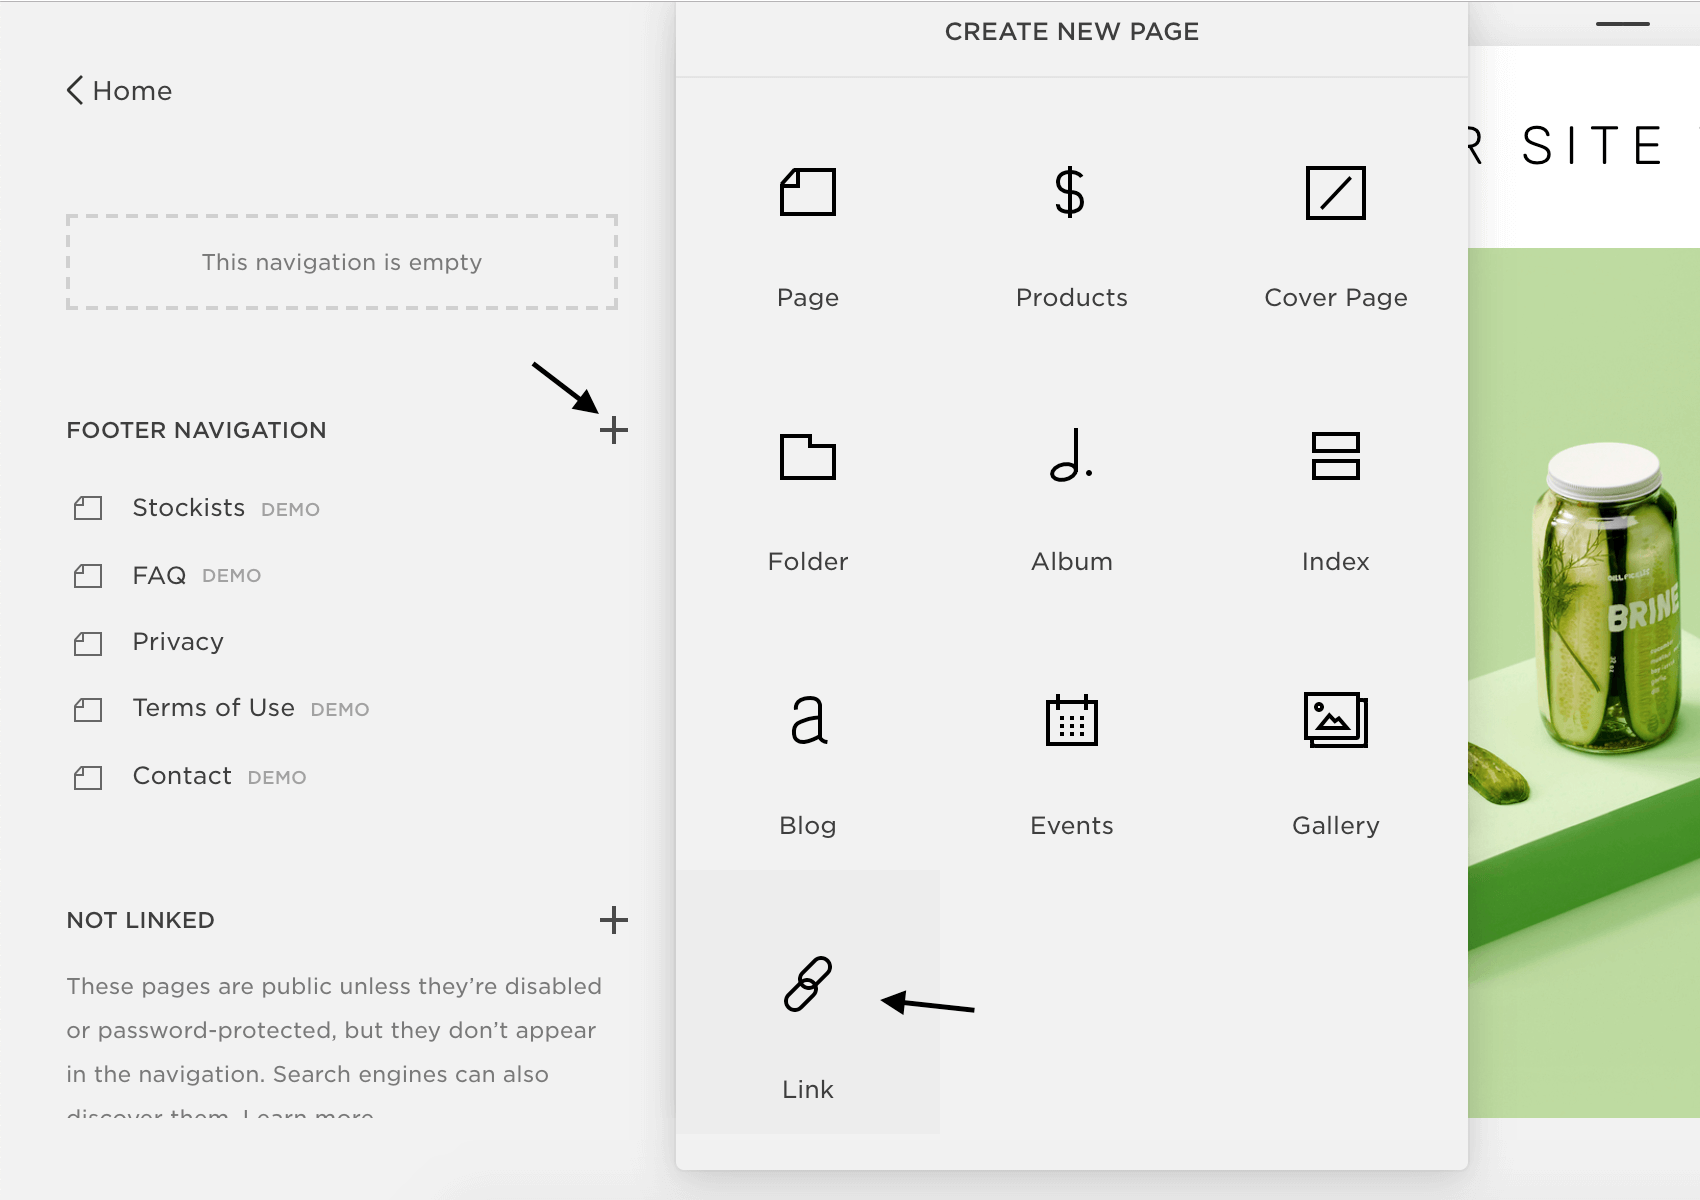 Squarespace - Create new page